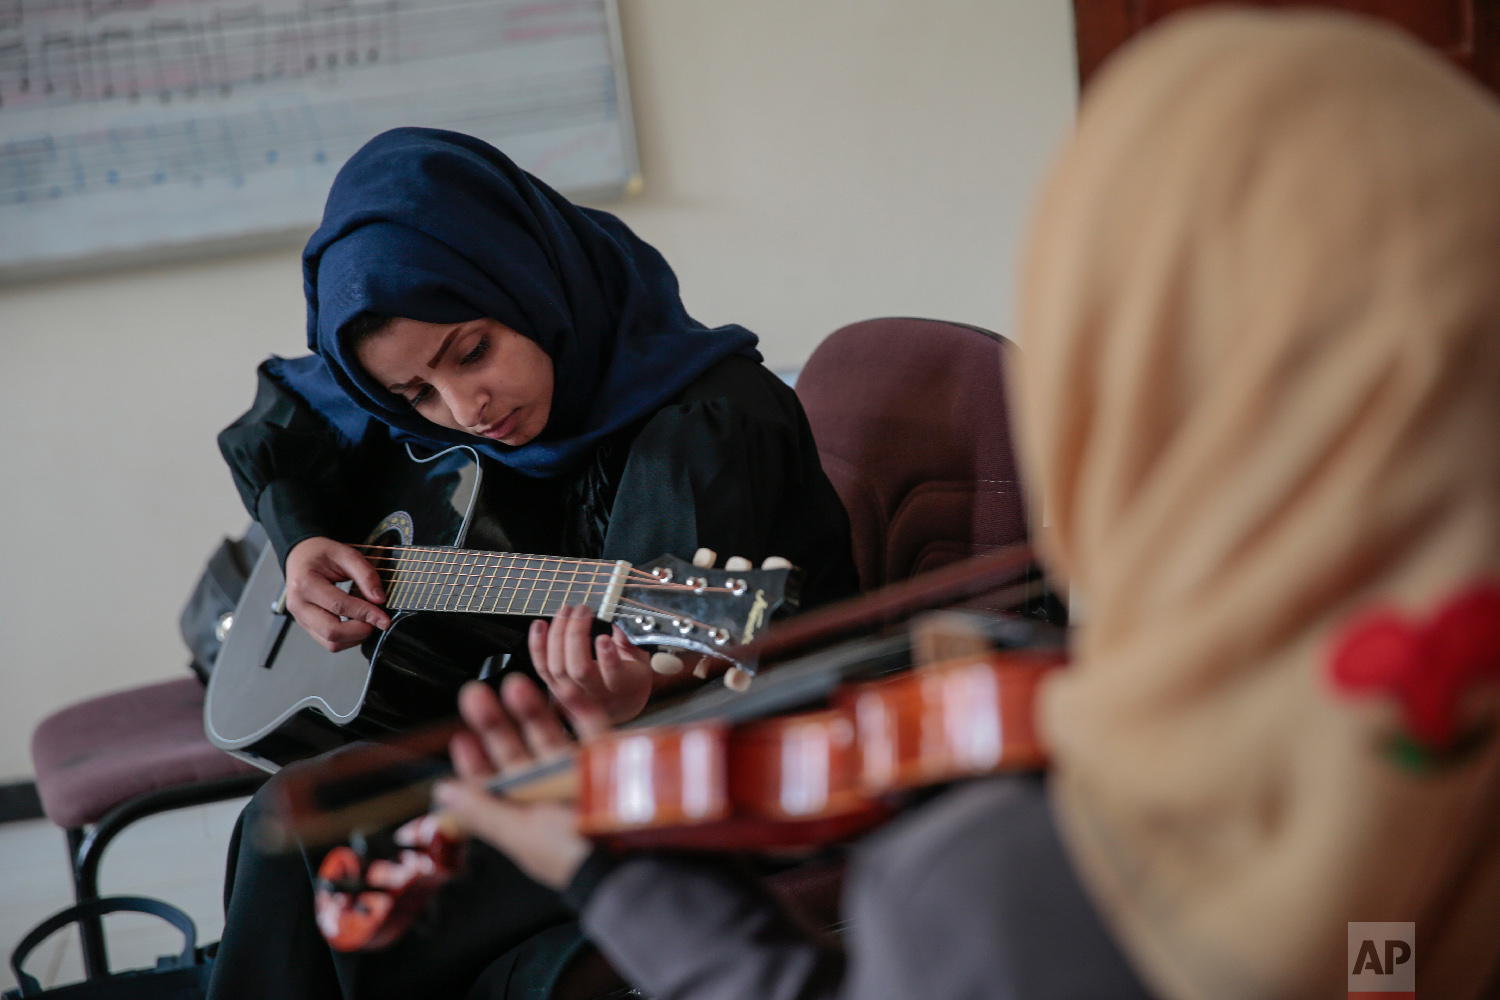 A female Yemeni music student practices playing the guitar during a music class at the Cultural Centre in Sanaa, Yemen on Sunday, April 8, 2018.(AP Photo/Hani Mohammed)